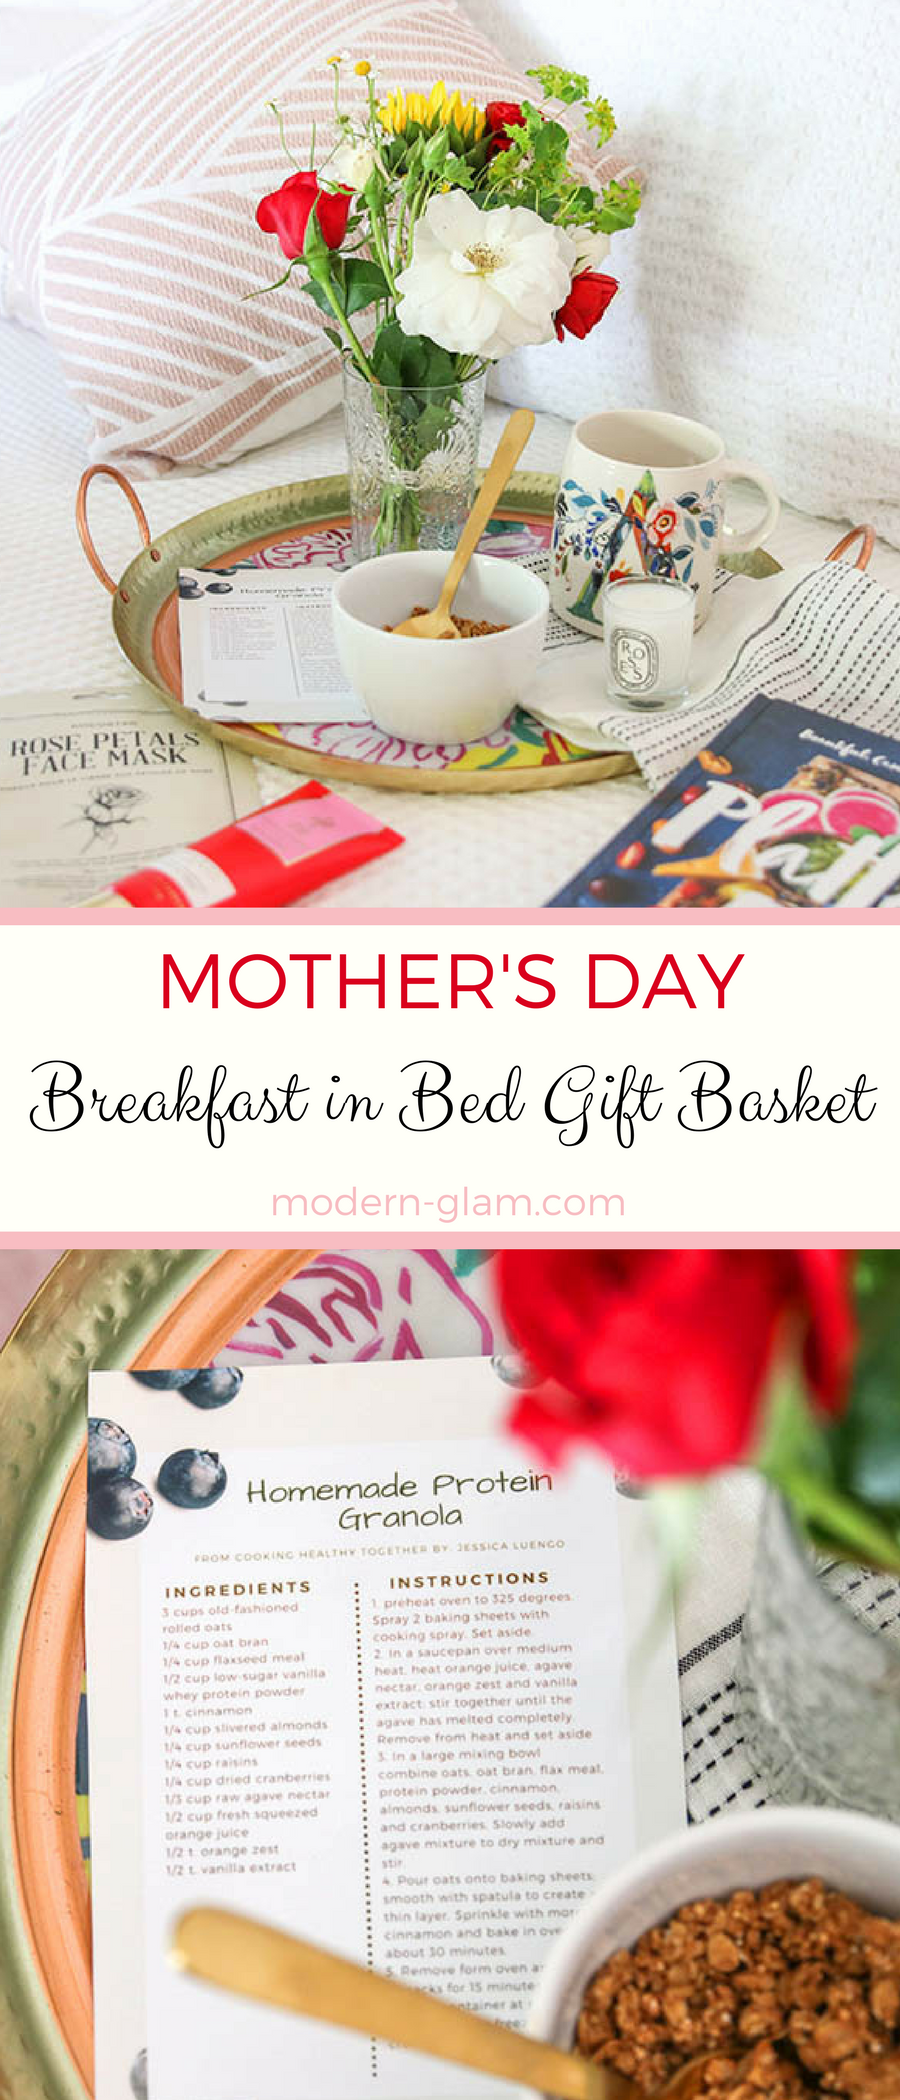 Mother's Day Breakfast in Bed Gift Basket plus a recipe for Homemade Protein Granola. #giftbasketideas #mothersday #mothersdaygifts #homemadegranola #healthygranola #proteingranola #healthyrecipes